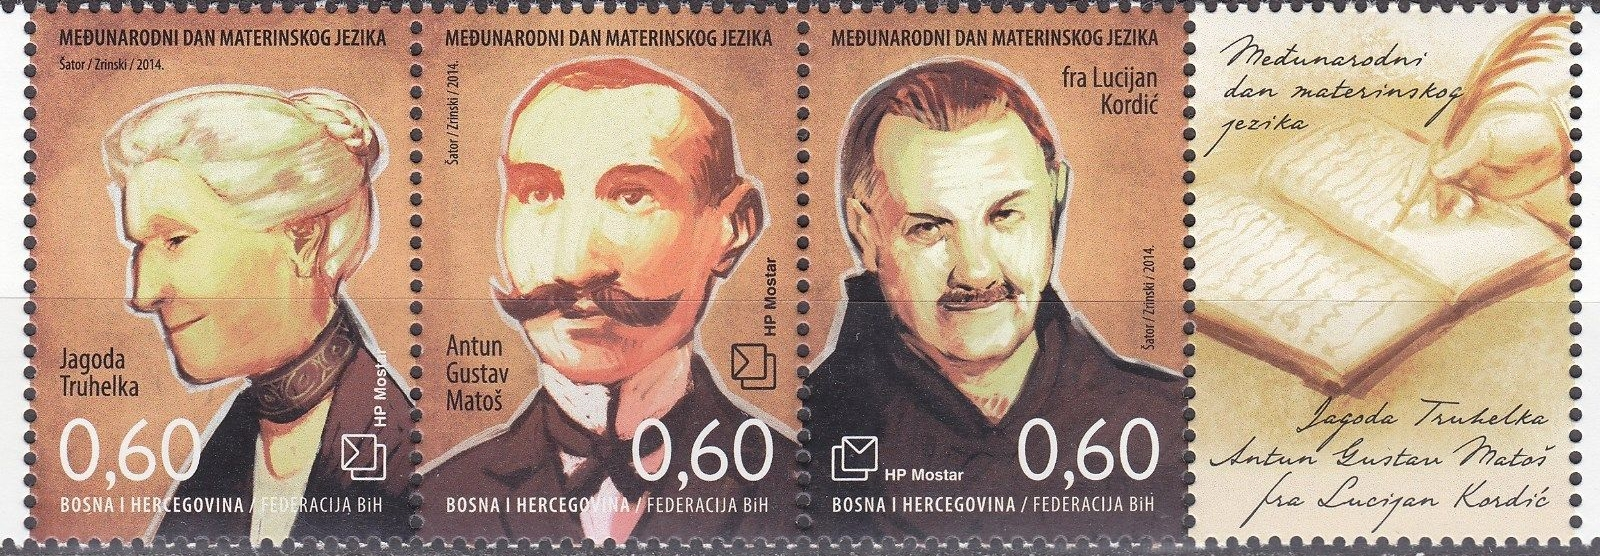 Stamps issued in 2014 for International Mother Language Day by Bosnia and Herzegovina.